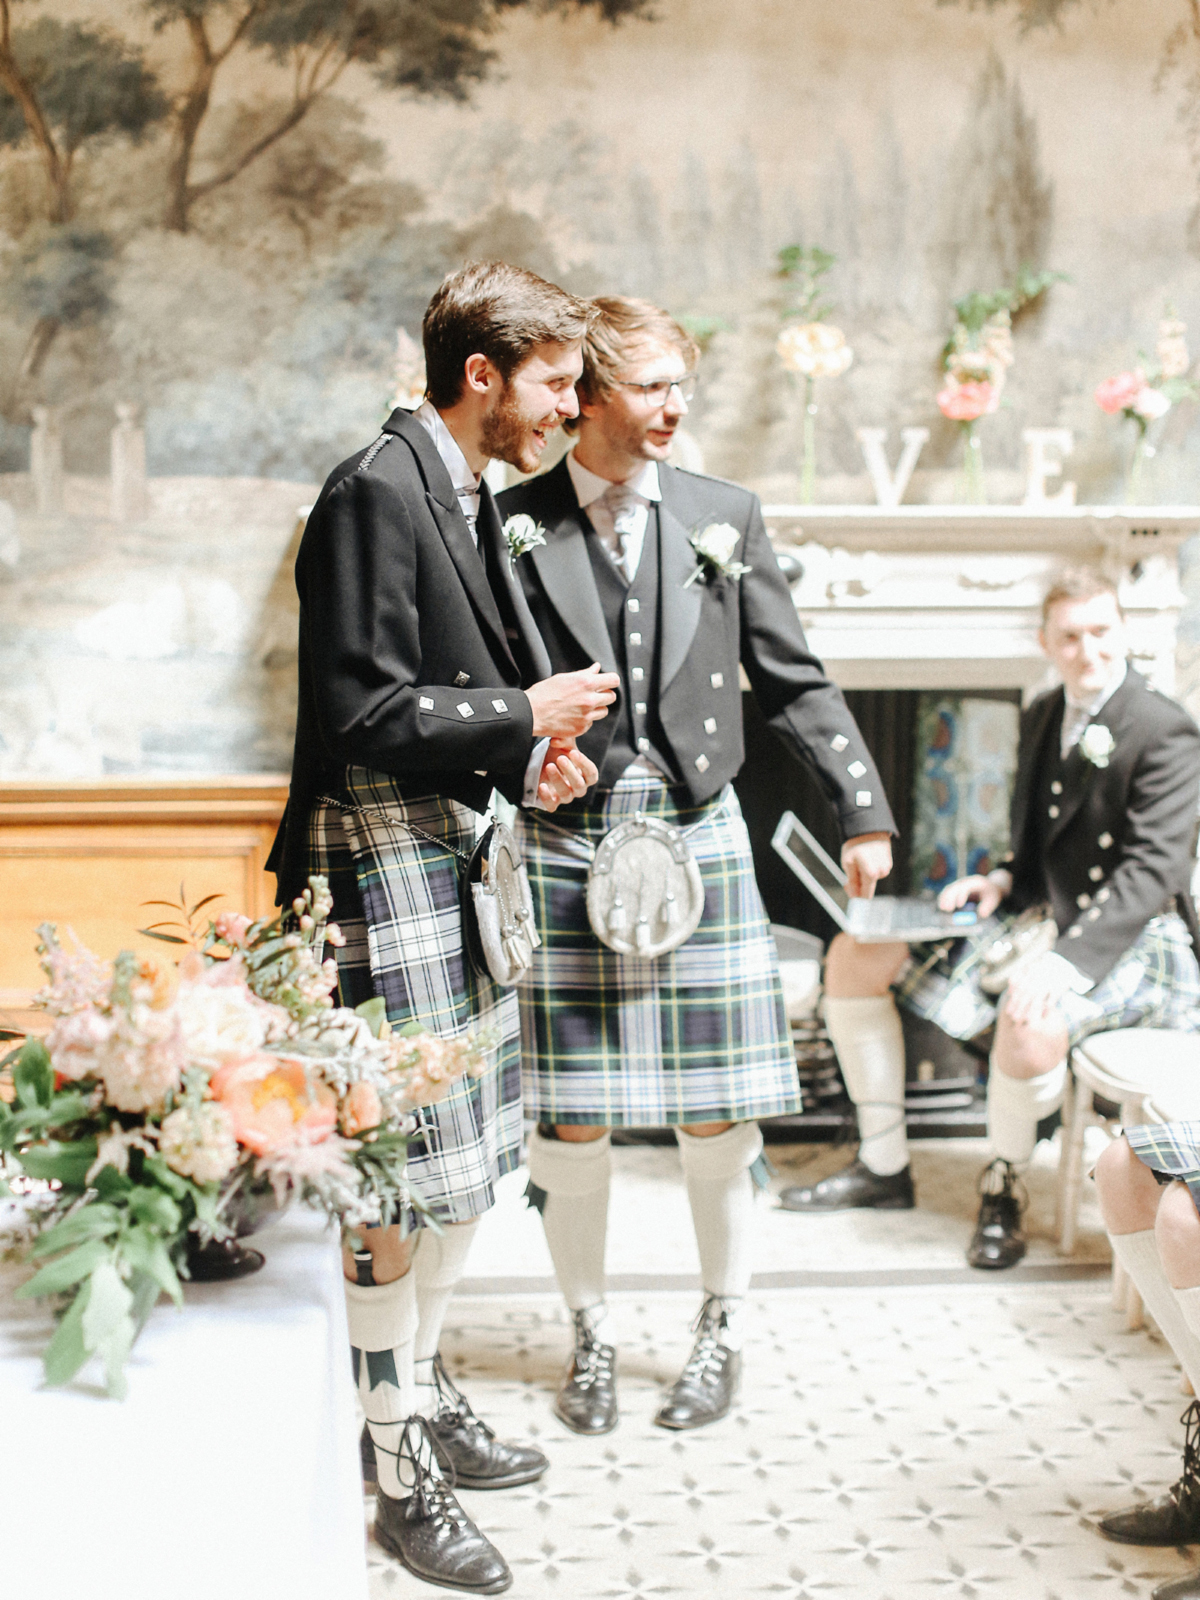 Groom and best man in green tartan kilts - A Caroline Castigliano Gown for a Chic and Classic Manor House Wedding in Shades of Peach